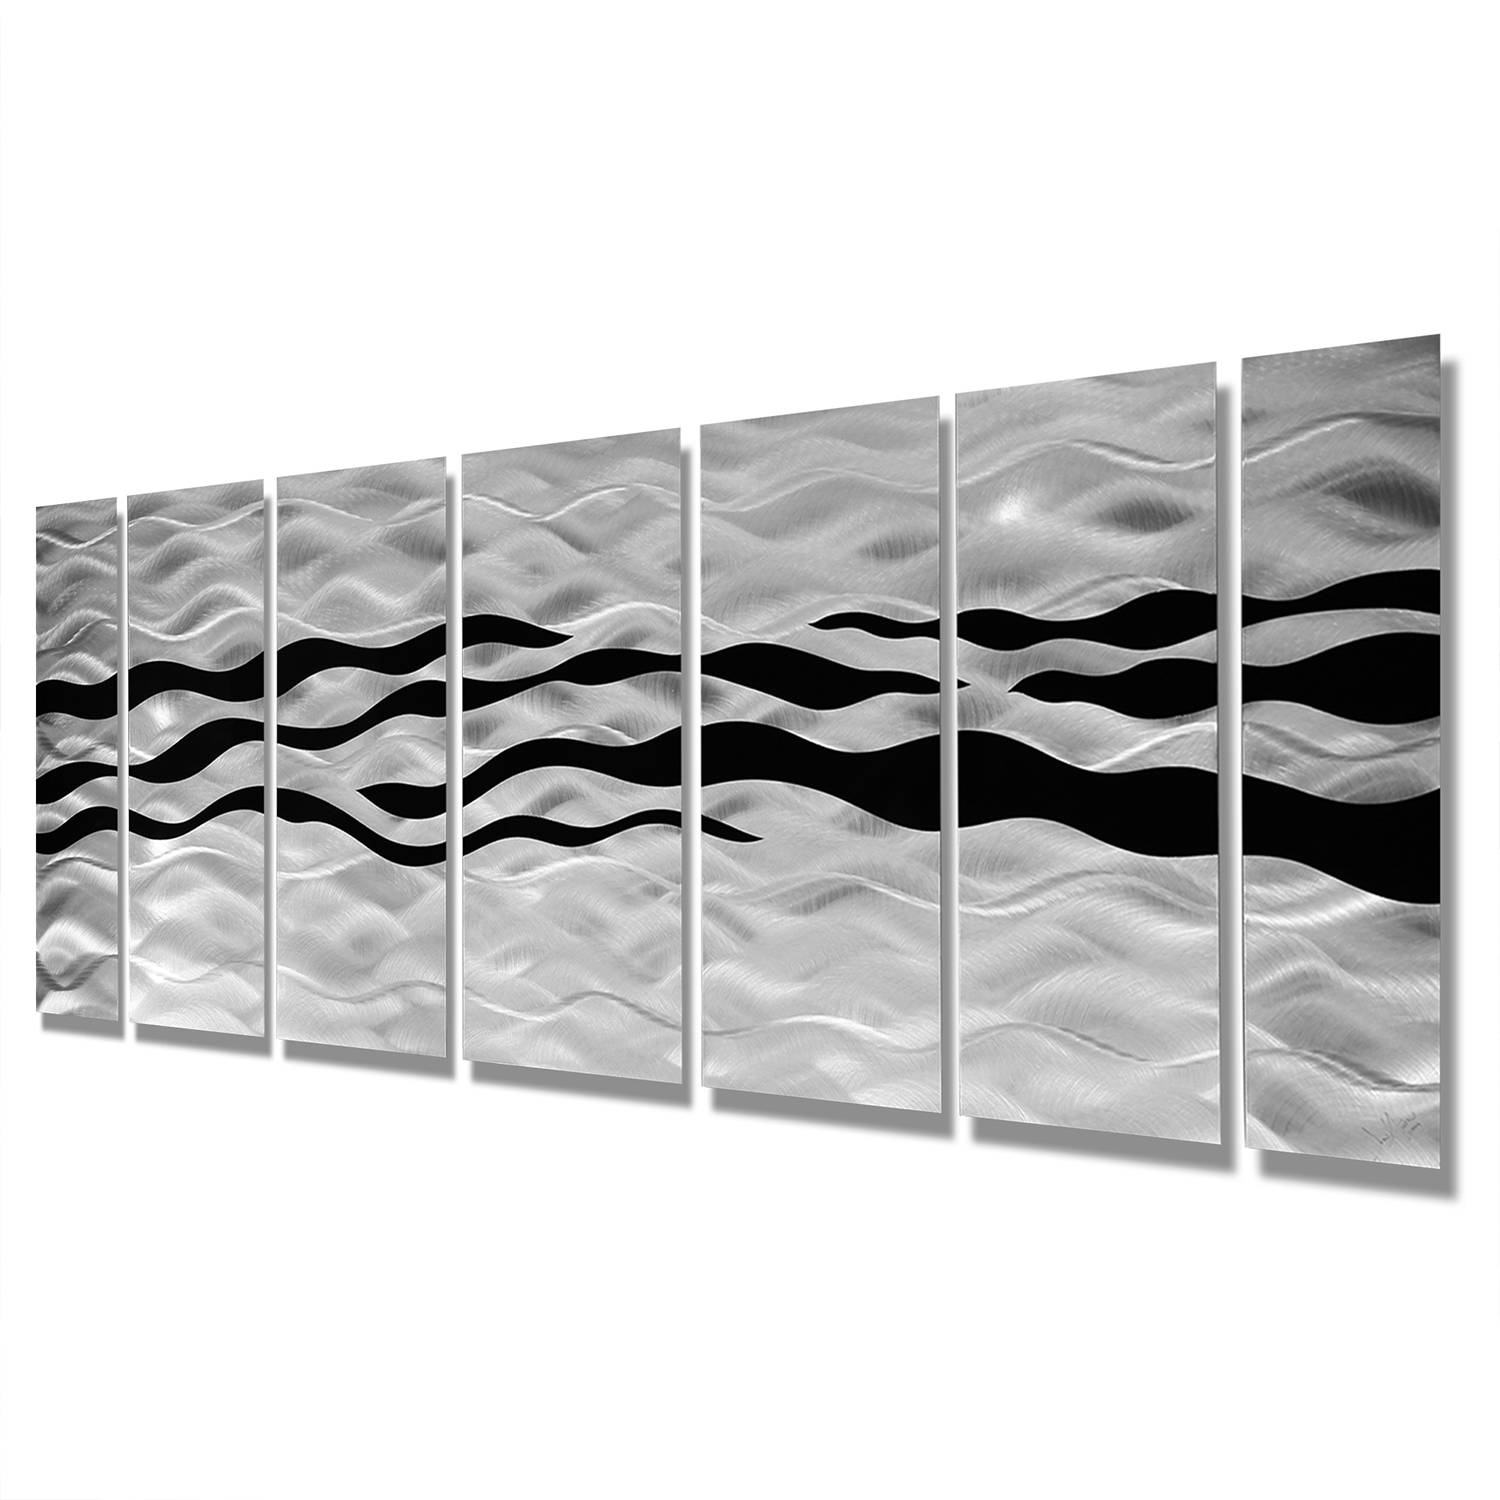 Wild Ways – Silver And Black Modern Metallic Wall Hanging Intended For 2018 Contemporary Metal Wall Art Decor (View 19 of 20)